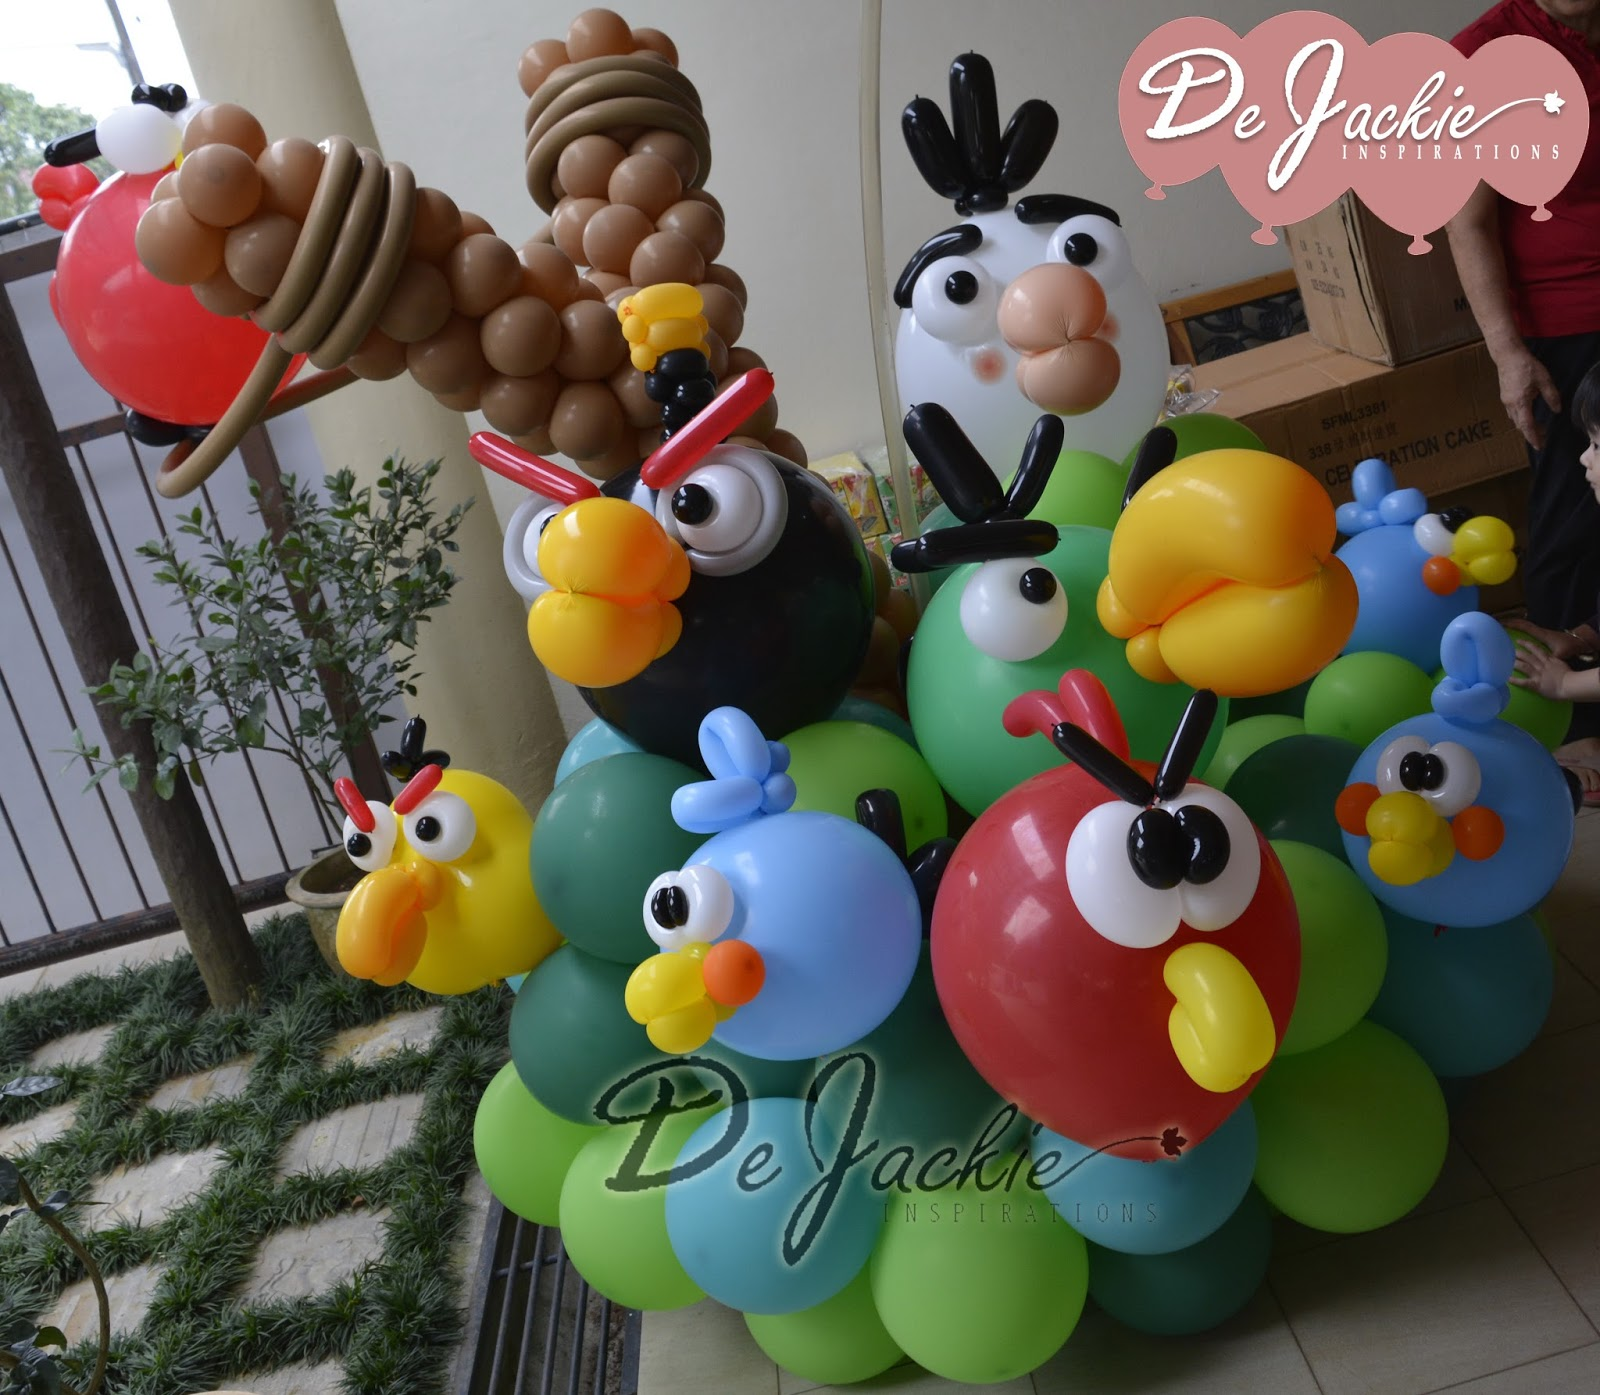 Balloon decorations for weddings birthday parties for Angry birds birthday party decoration ideas